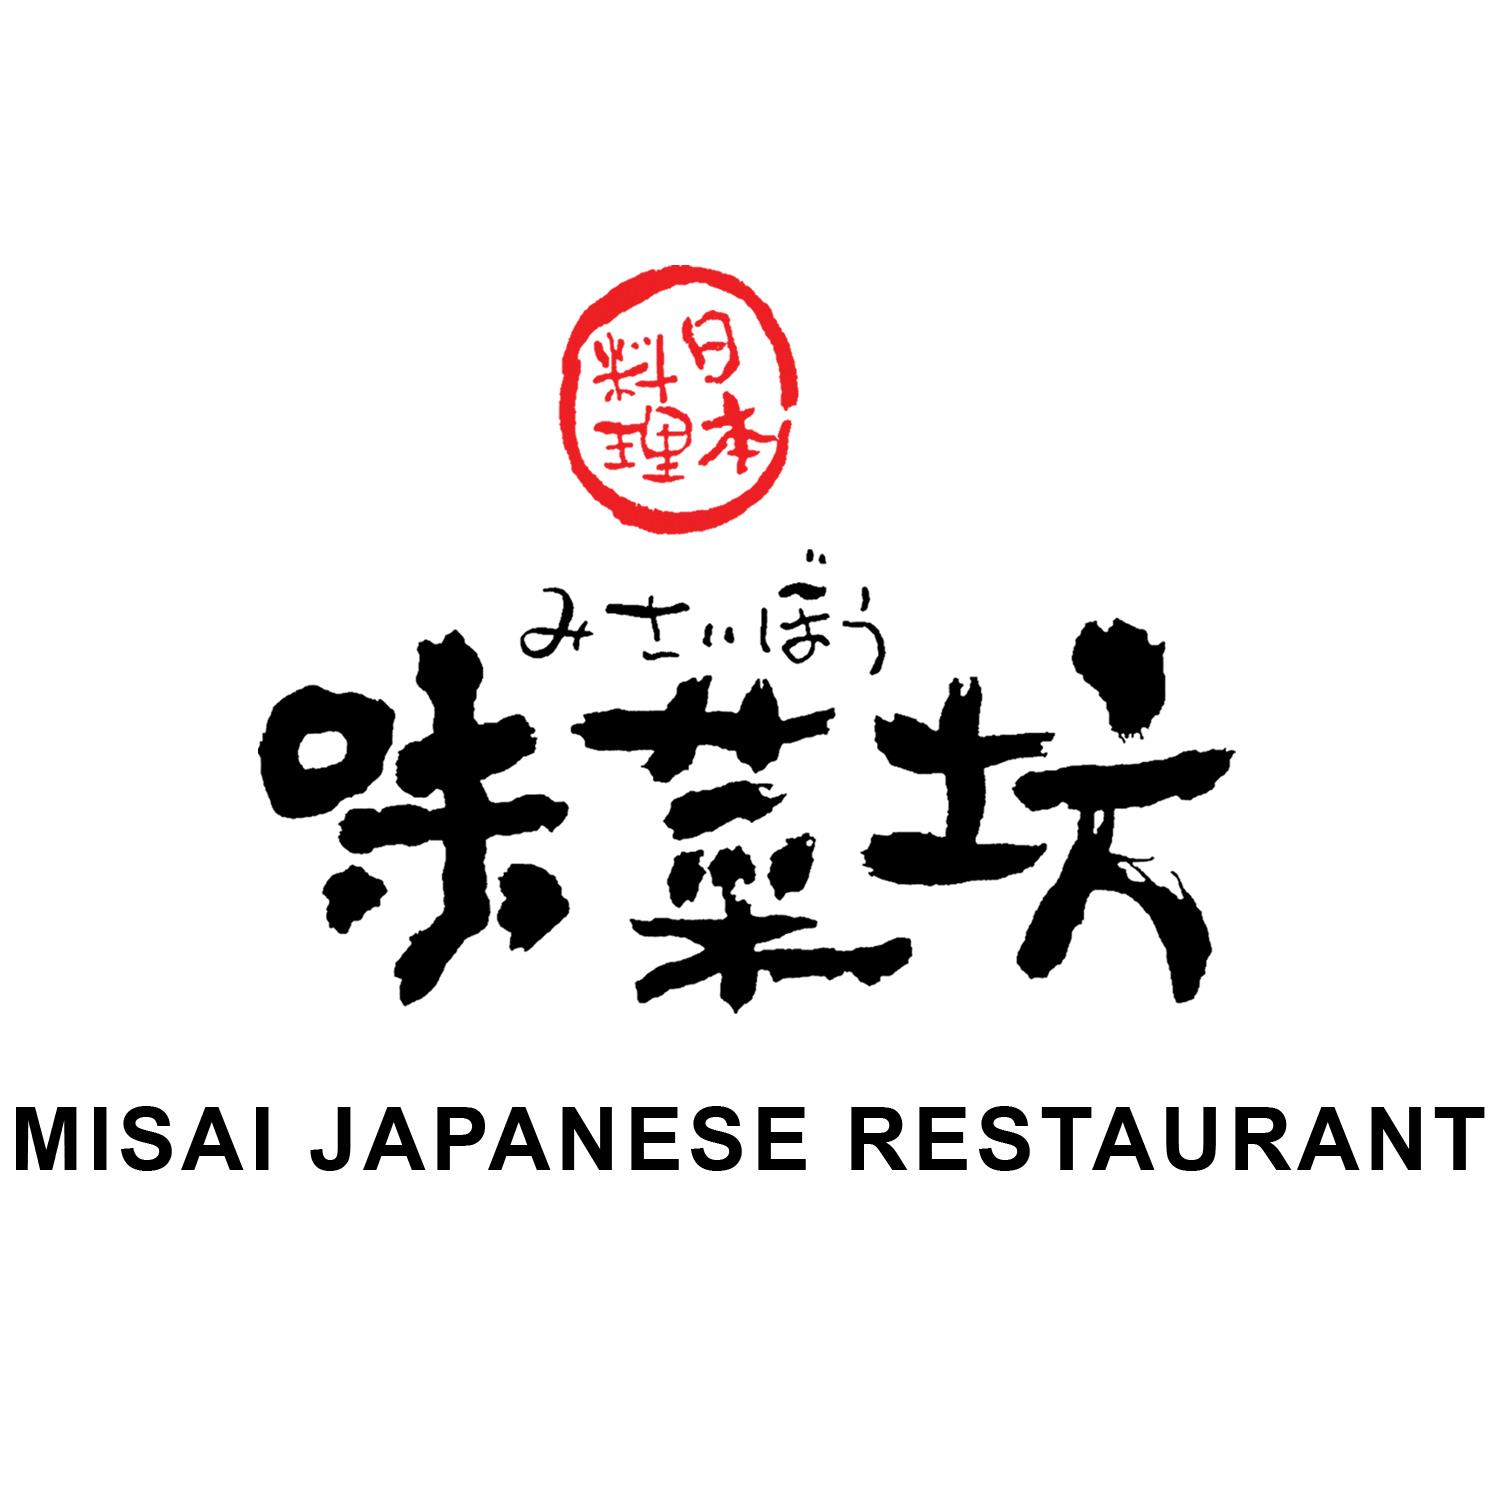 misaijapaneserestaurant.jpg